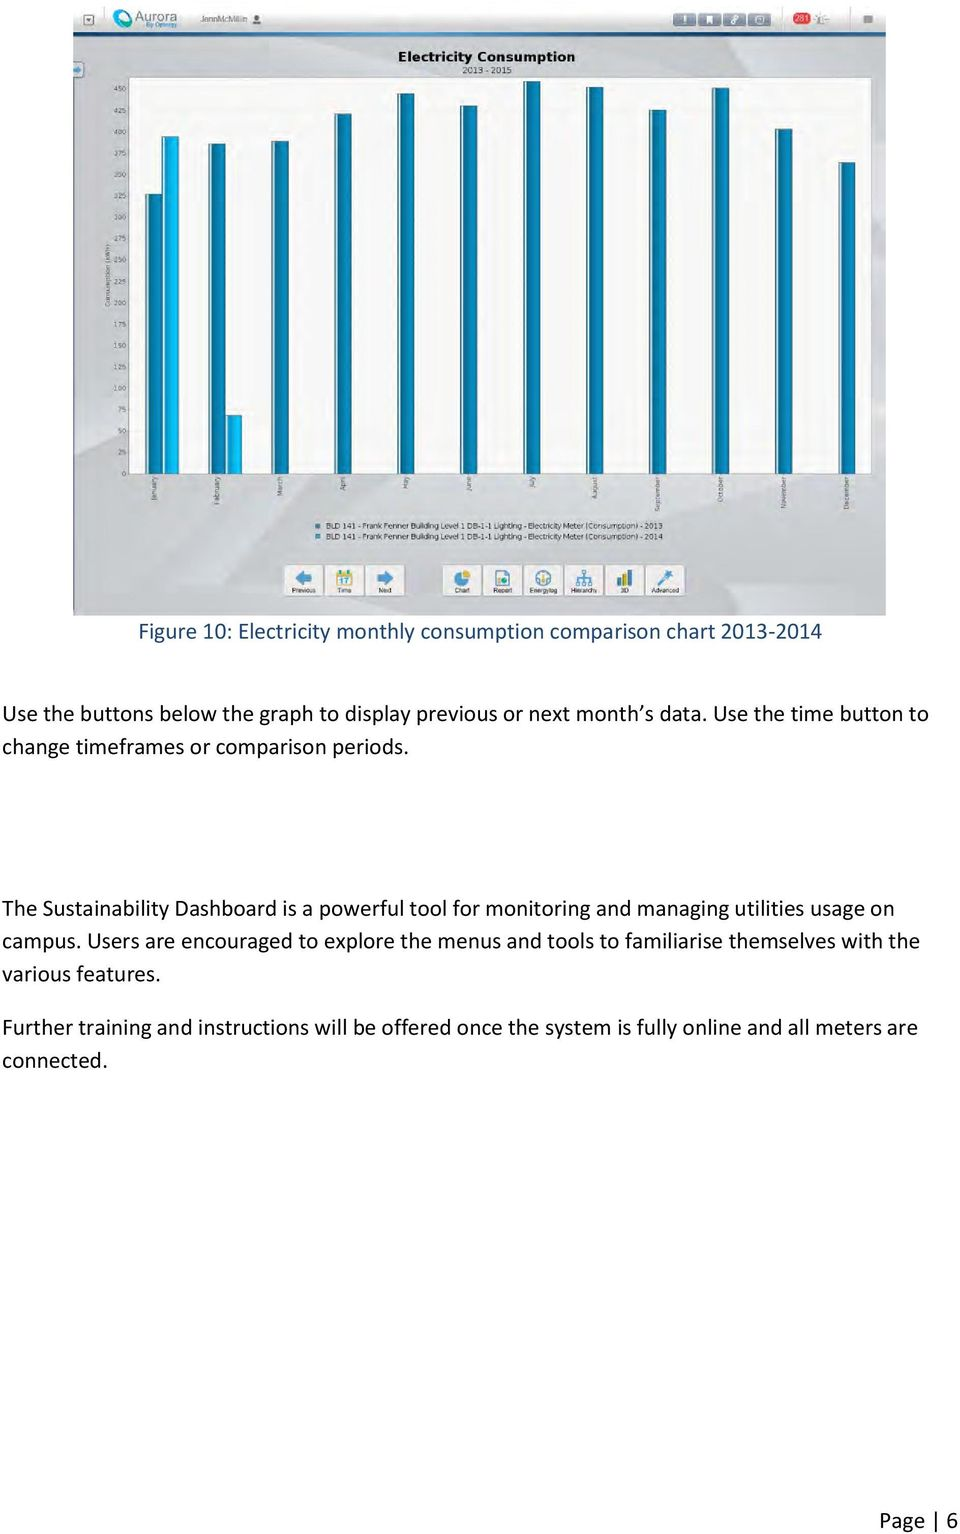 The Sustainability Dashboard is a powerful tool for monitoring and managing utilities usage on campus.